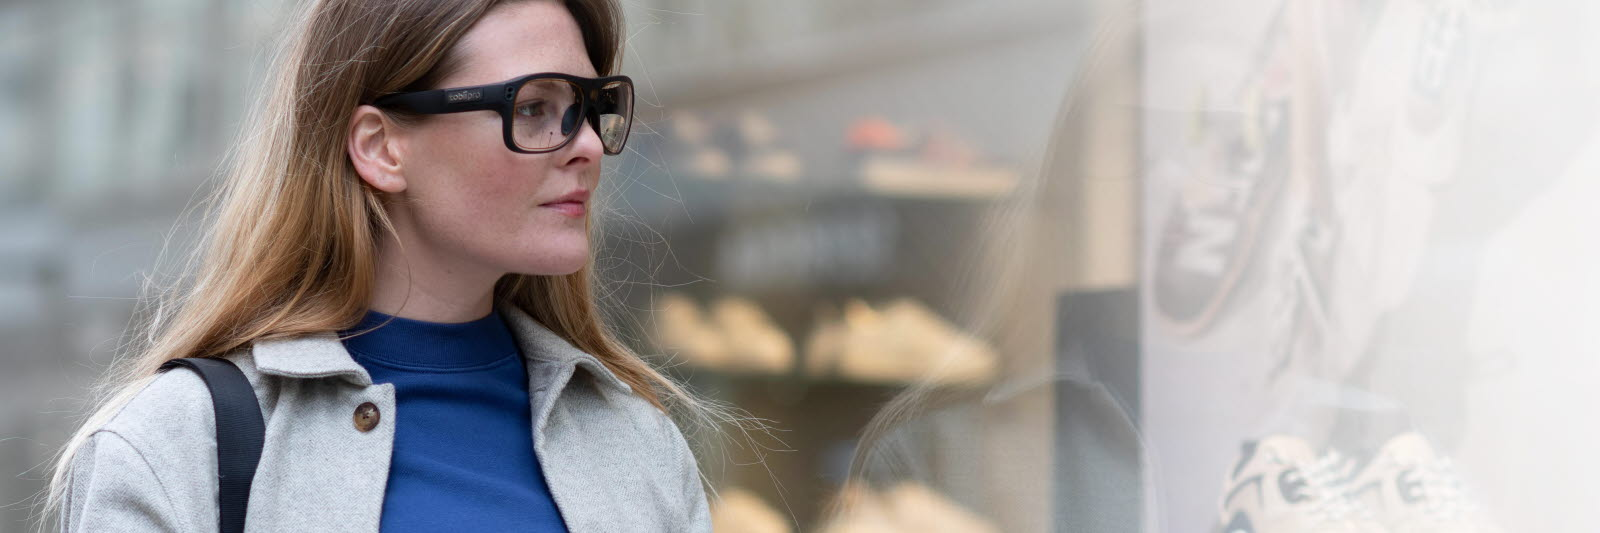 Woman using Tobii Pro Glasses 3 to look at products in a store window